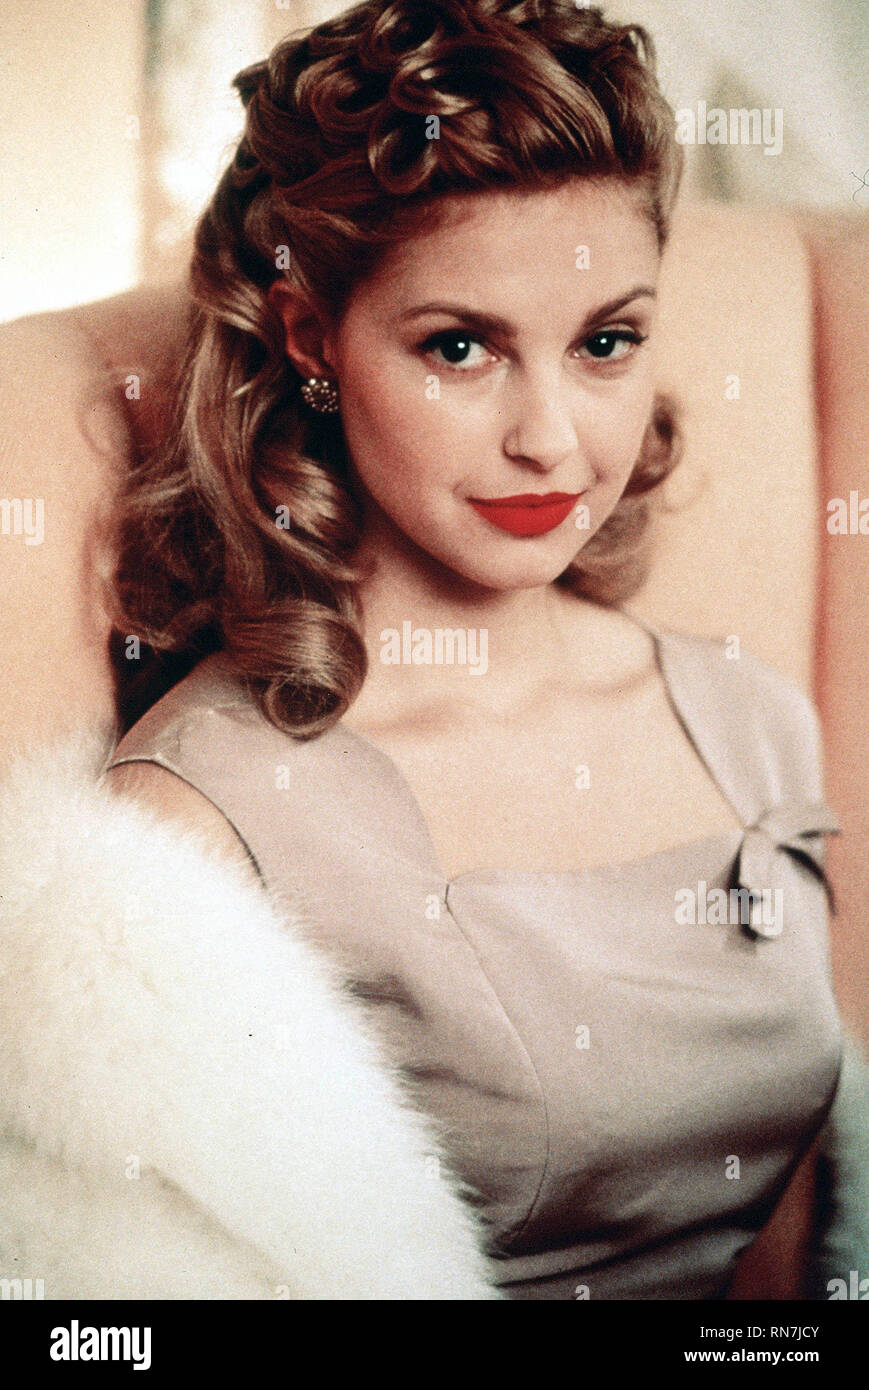 ASHLEY JUDD, NORMA JEAN and MARILYN, 1996 - Stock Image